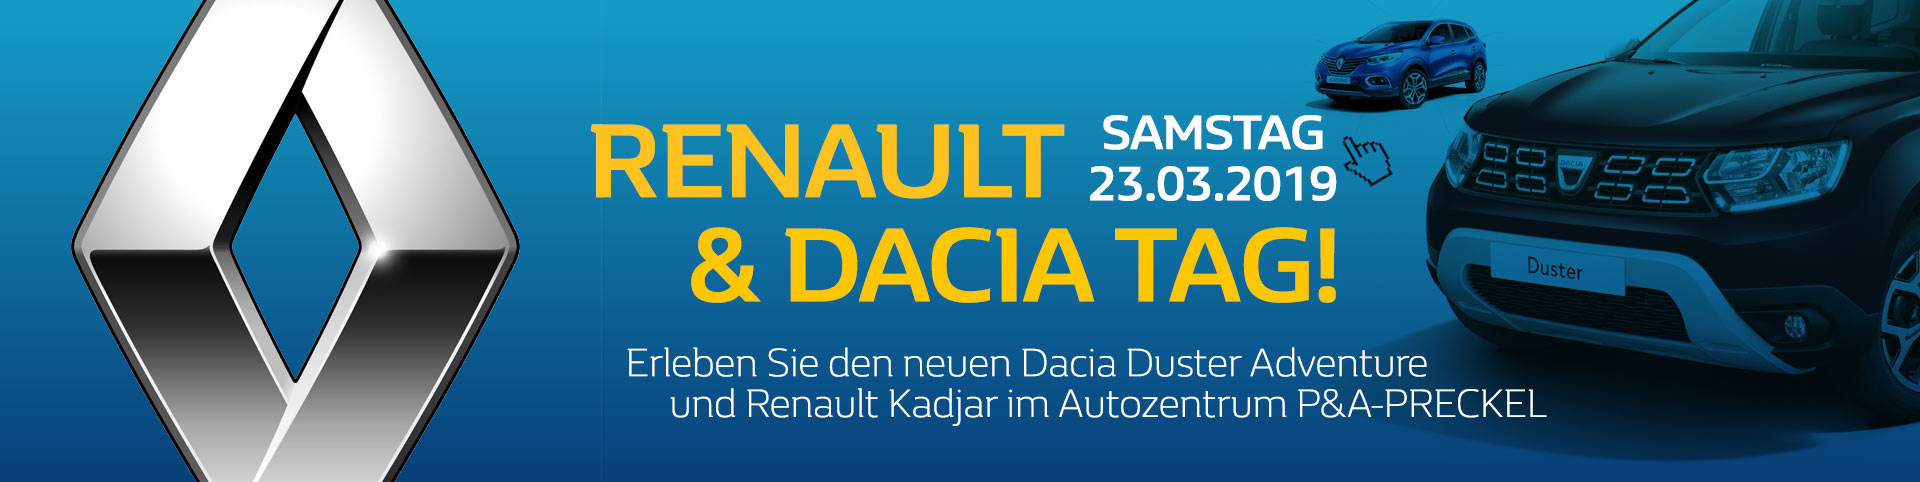 Renault Tag am 23.03.2019 im Autozentrum P&A-Preckel